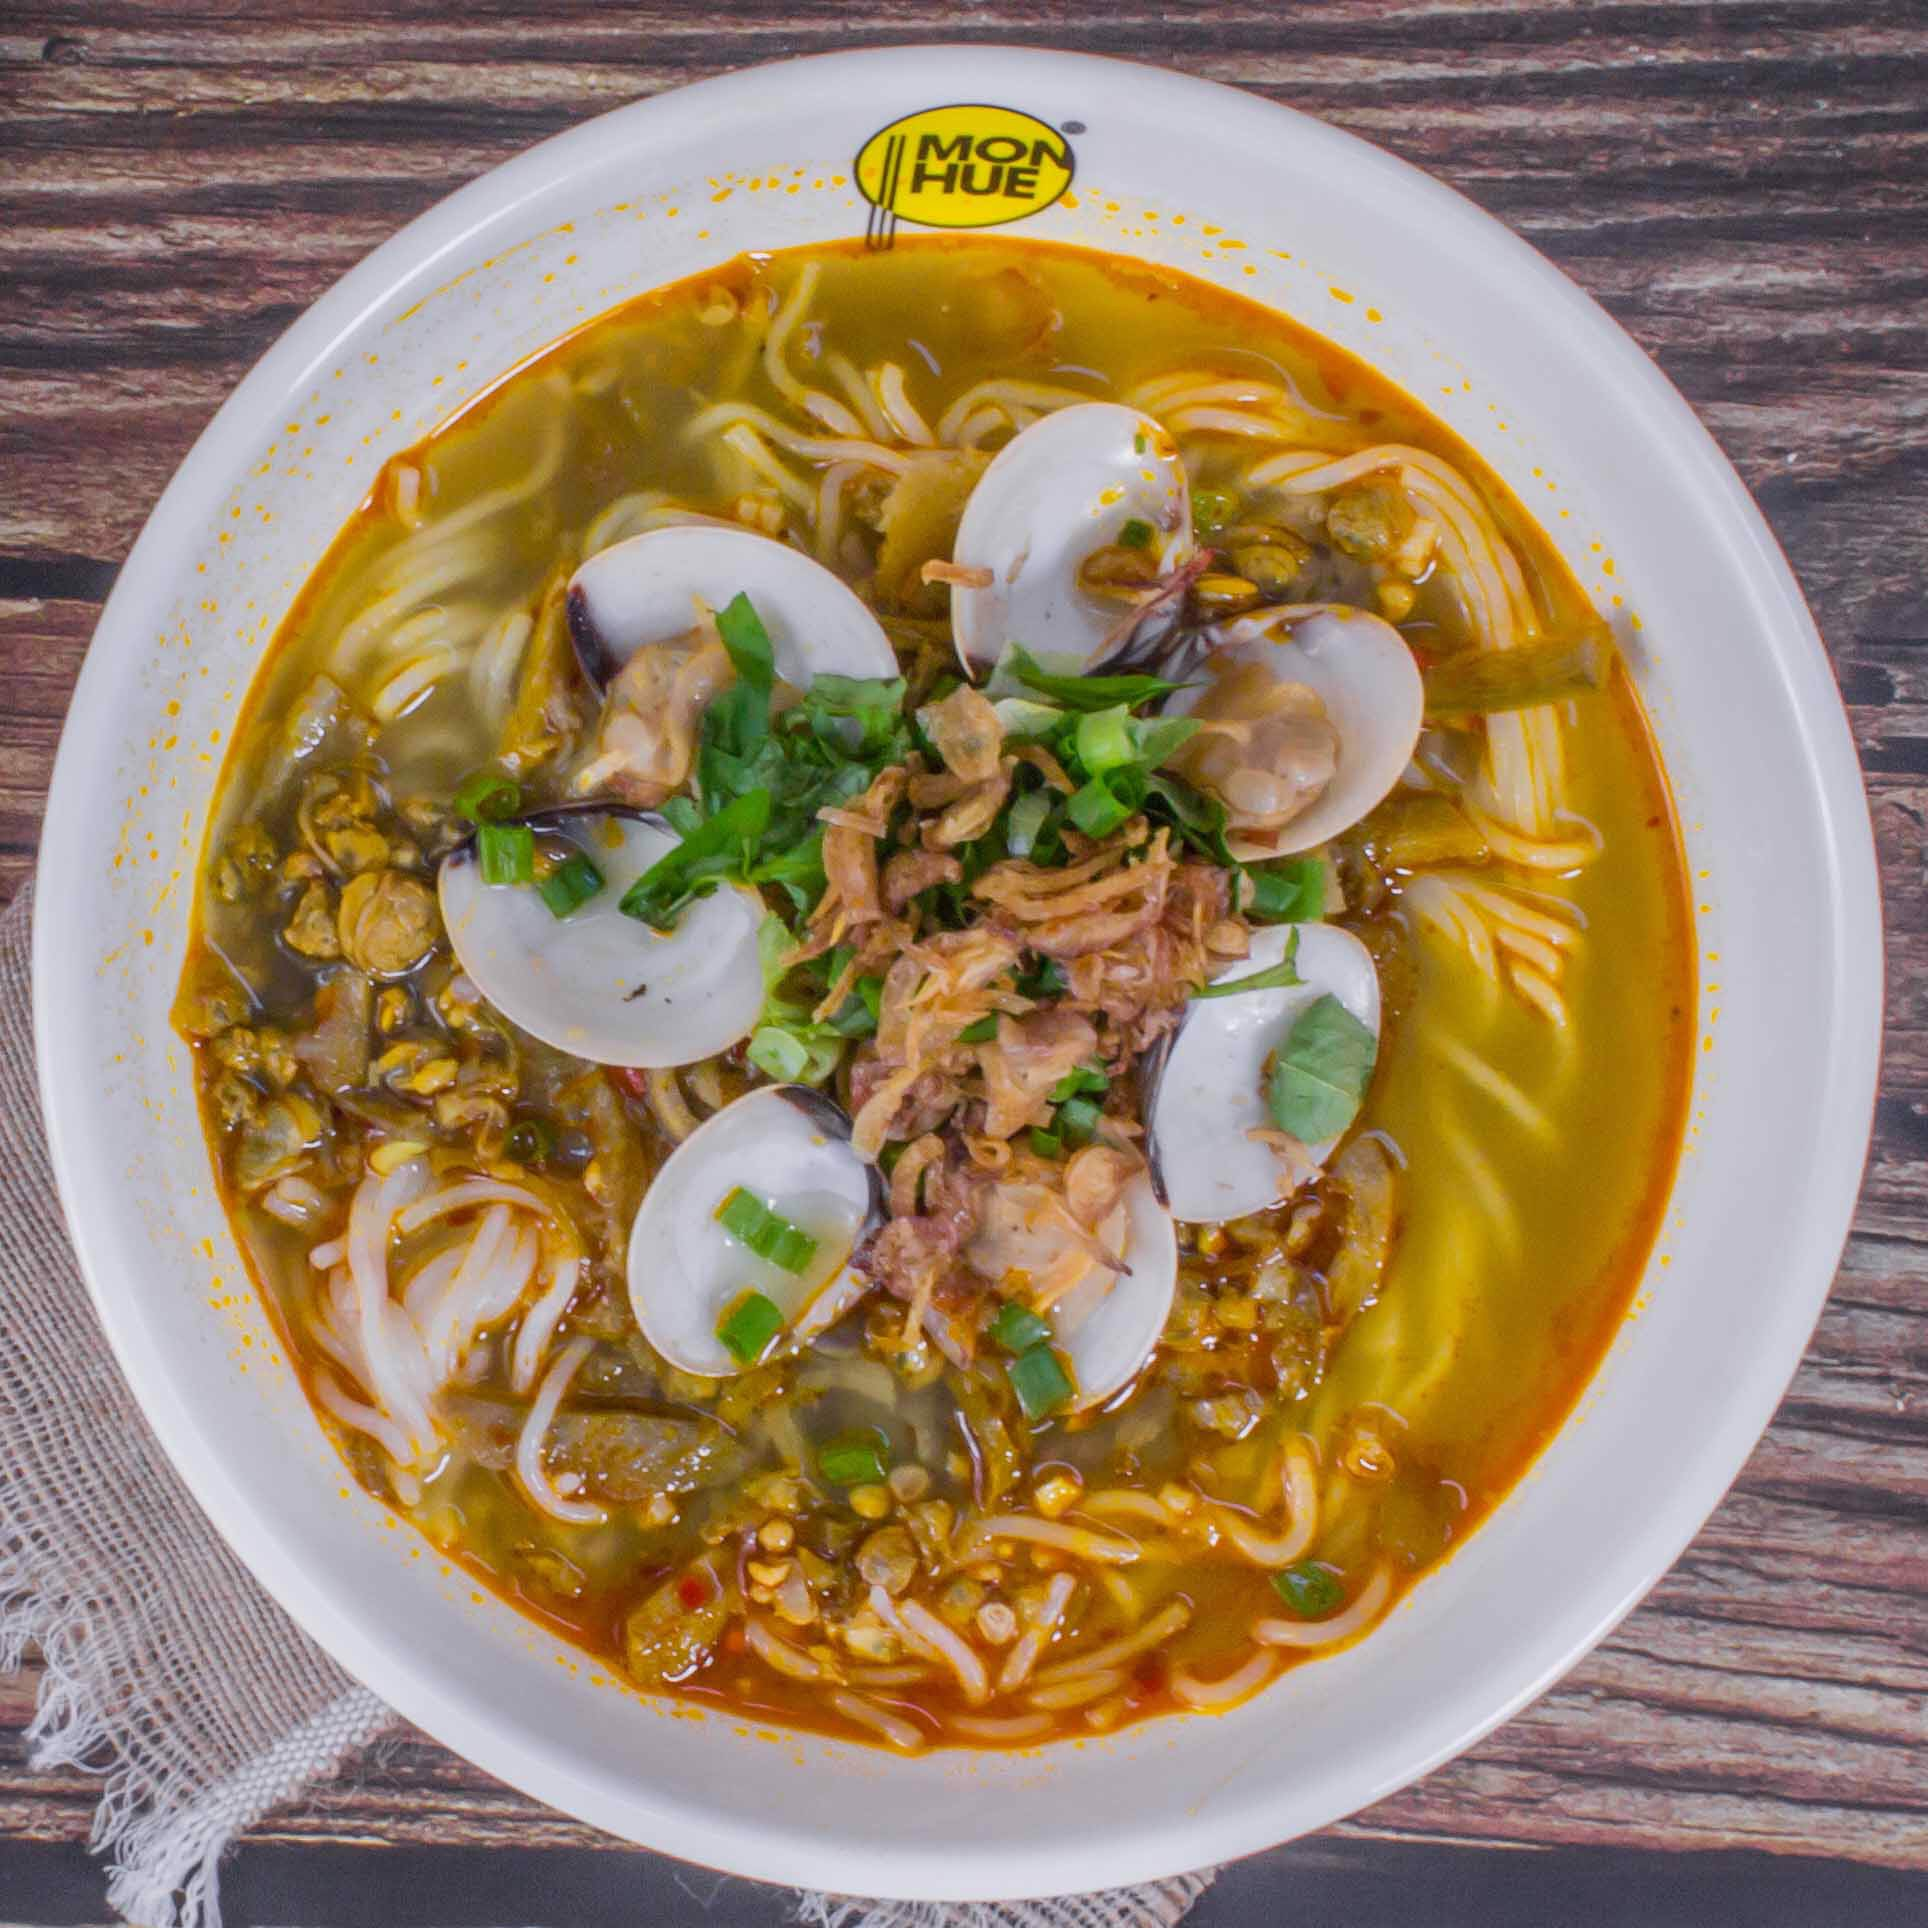 RICE NOODLES SOUP WITH CLAMS AND BABY CLAMS